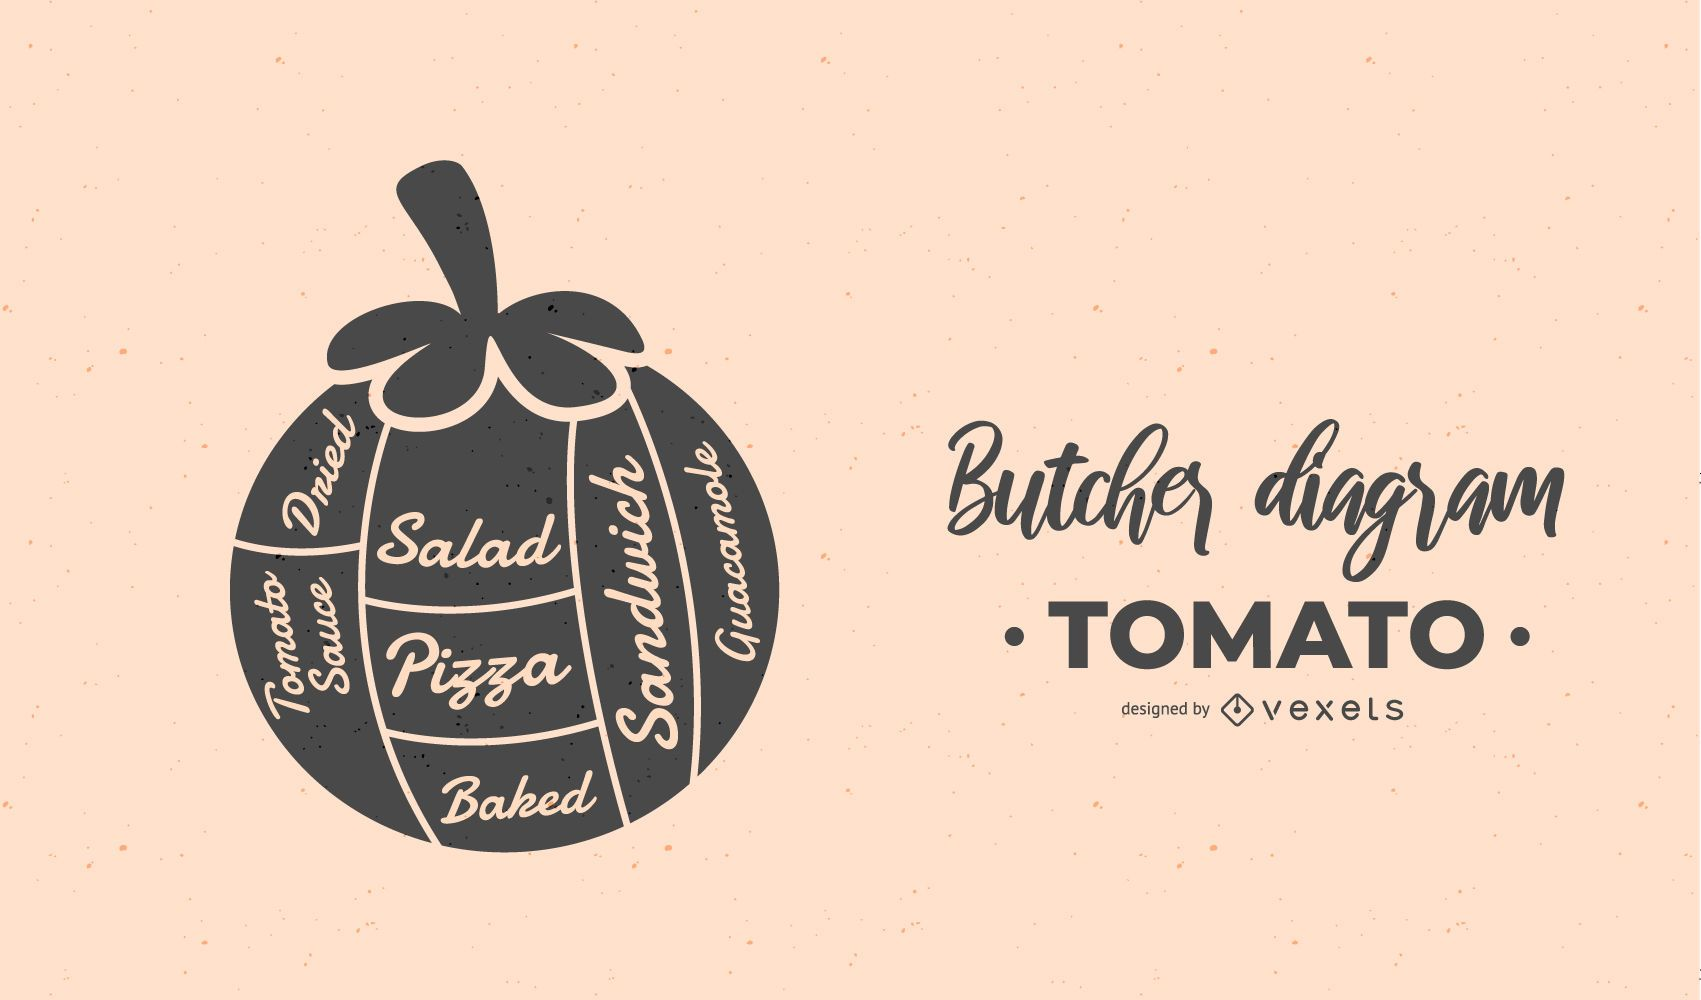 hight resolution of tomato butcher diagram design download large image 1701x1000px